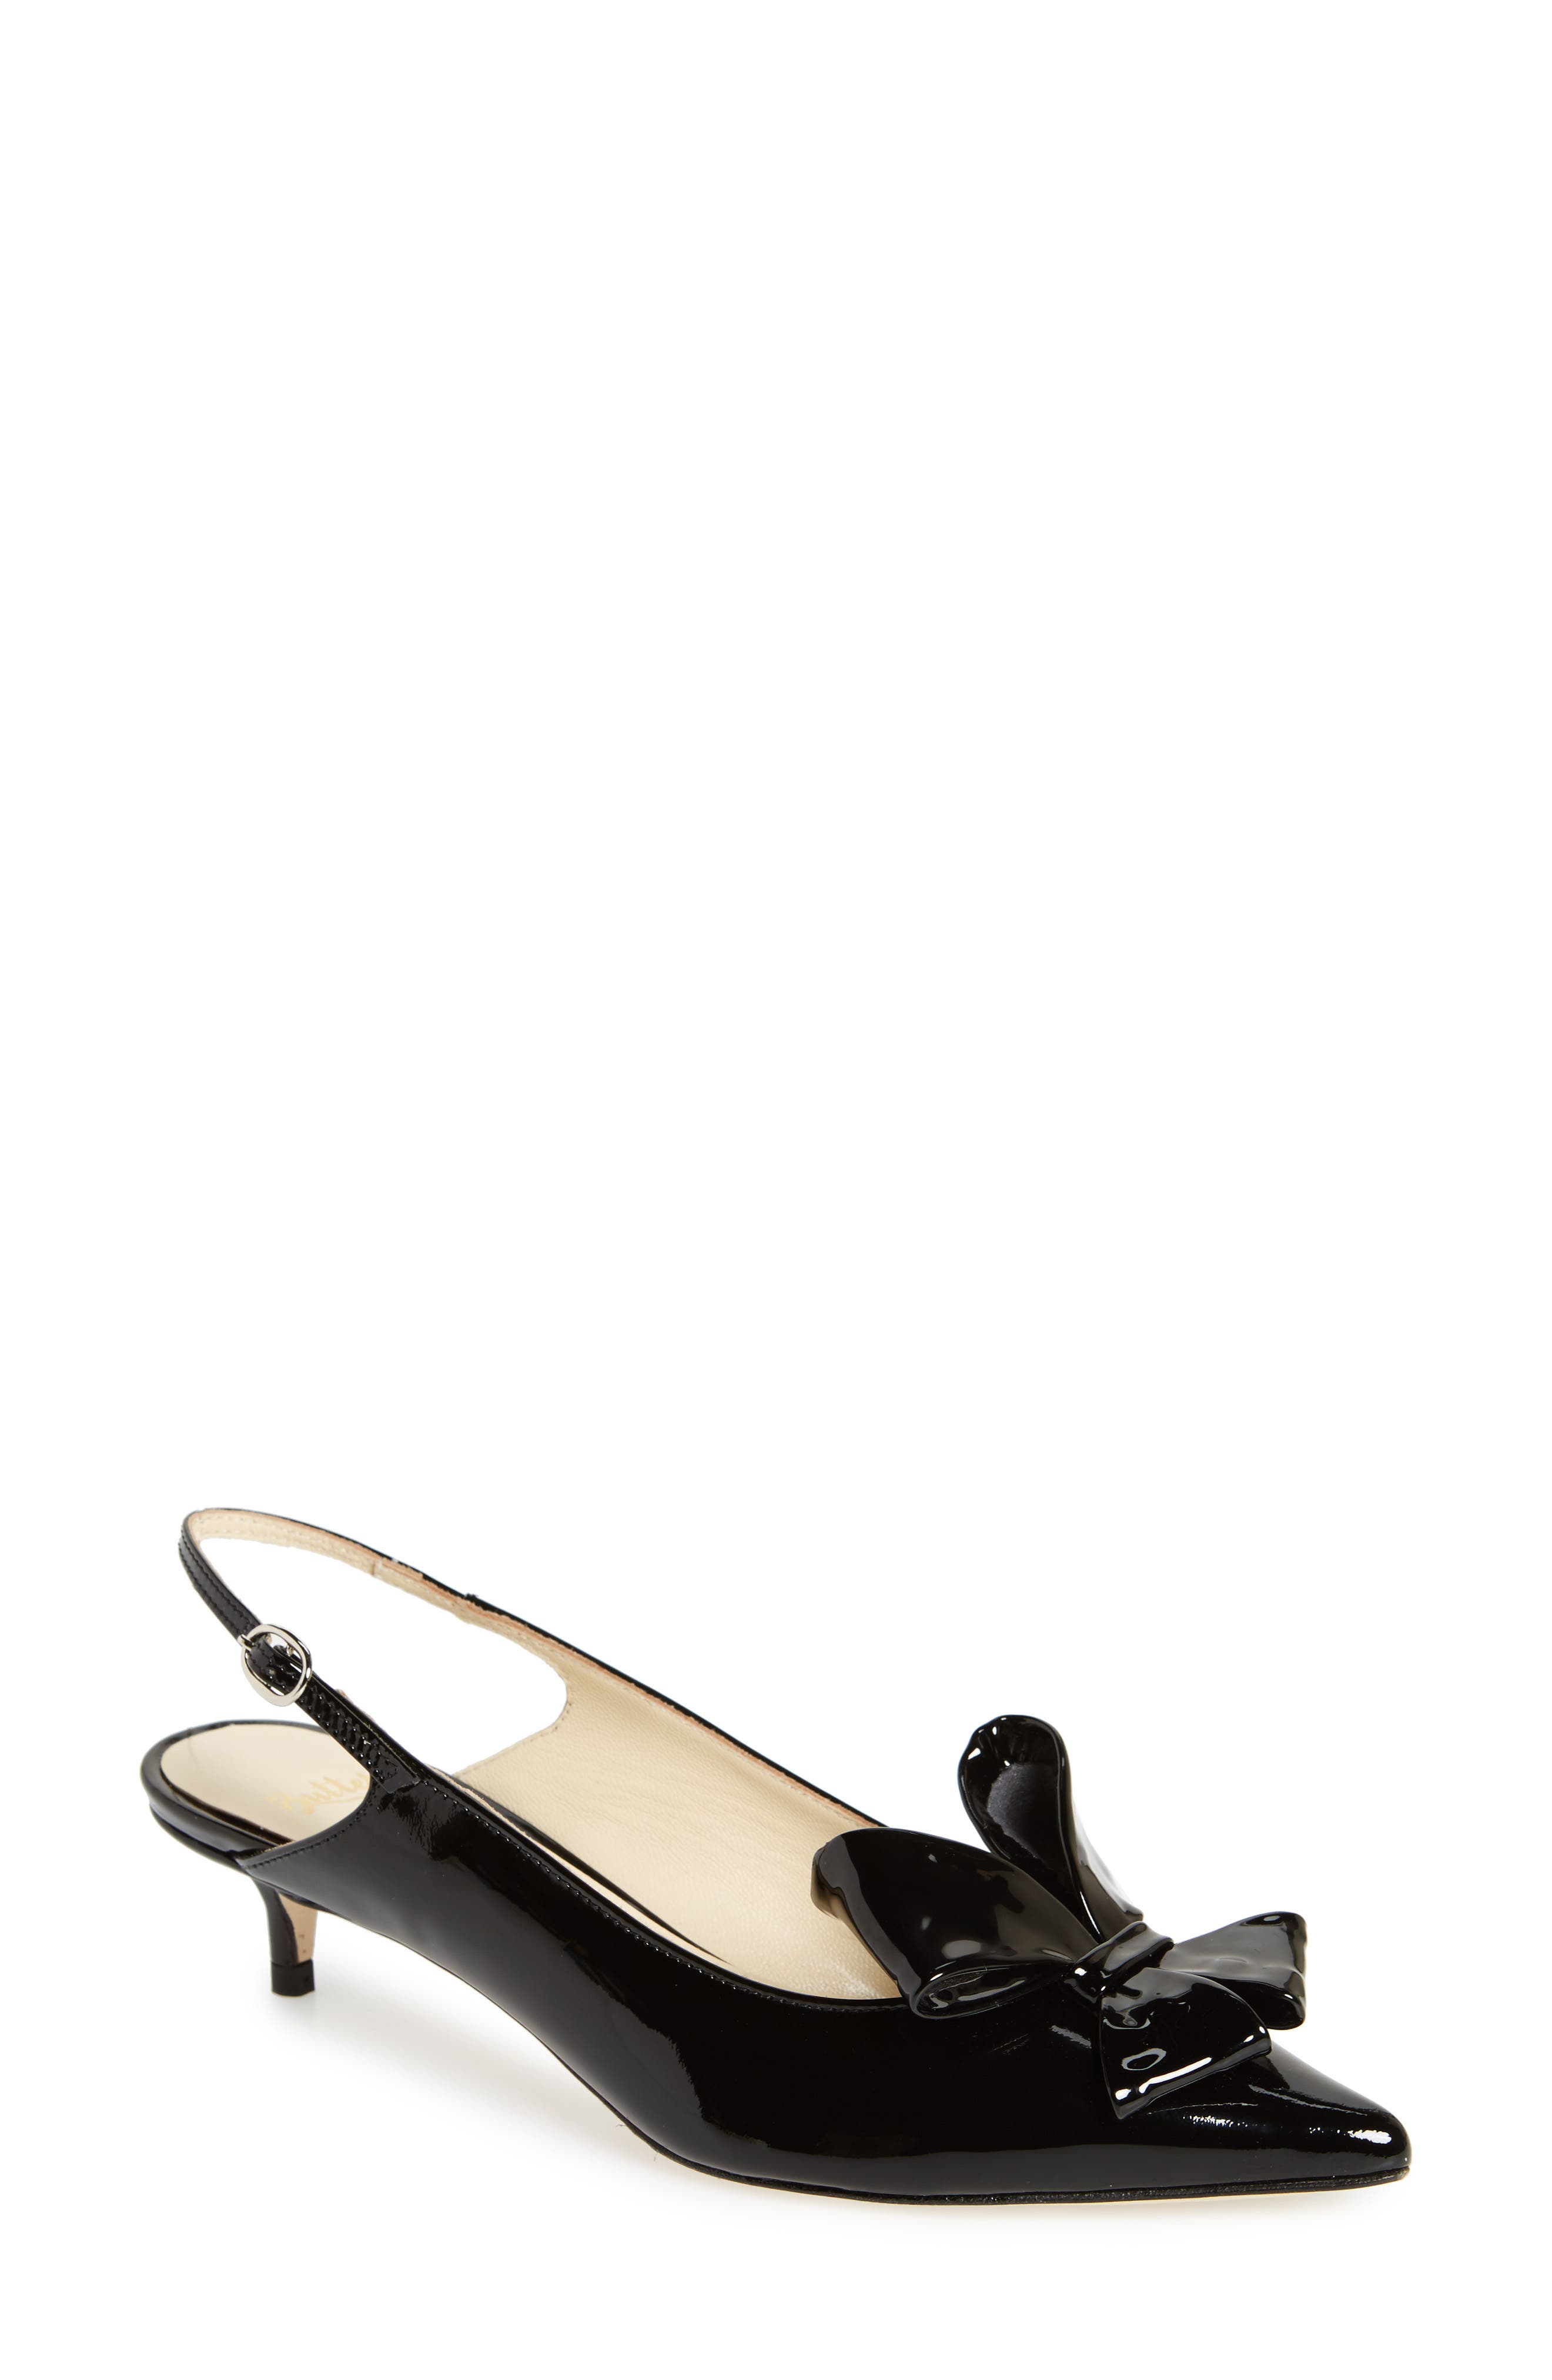 Butter Bee Slingback Pump,                         Main,                         color,